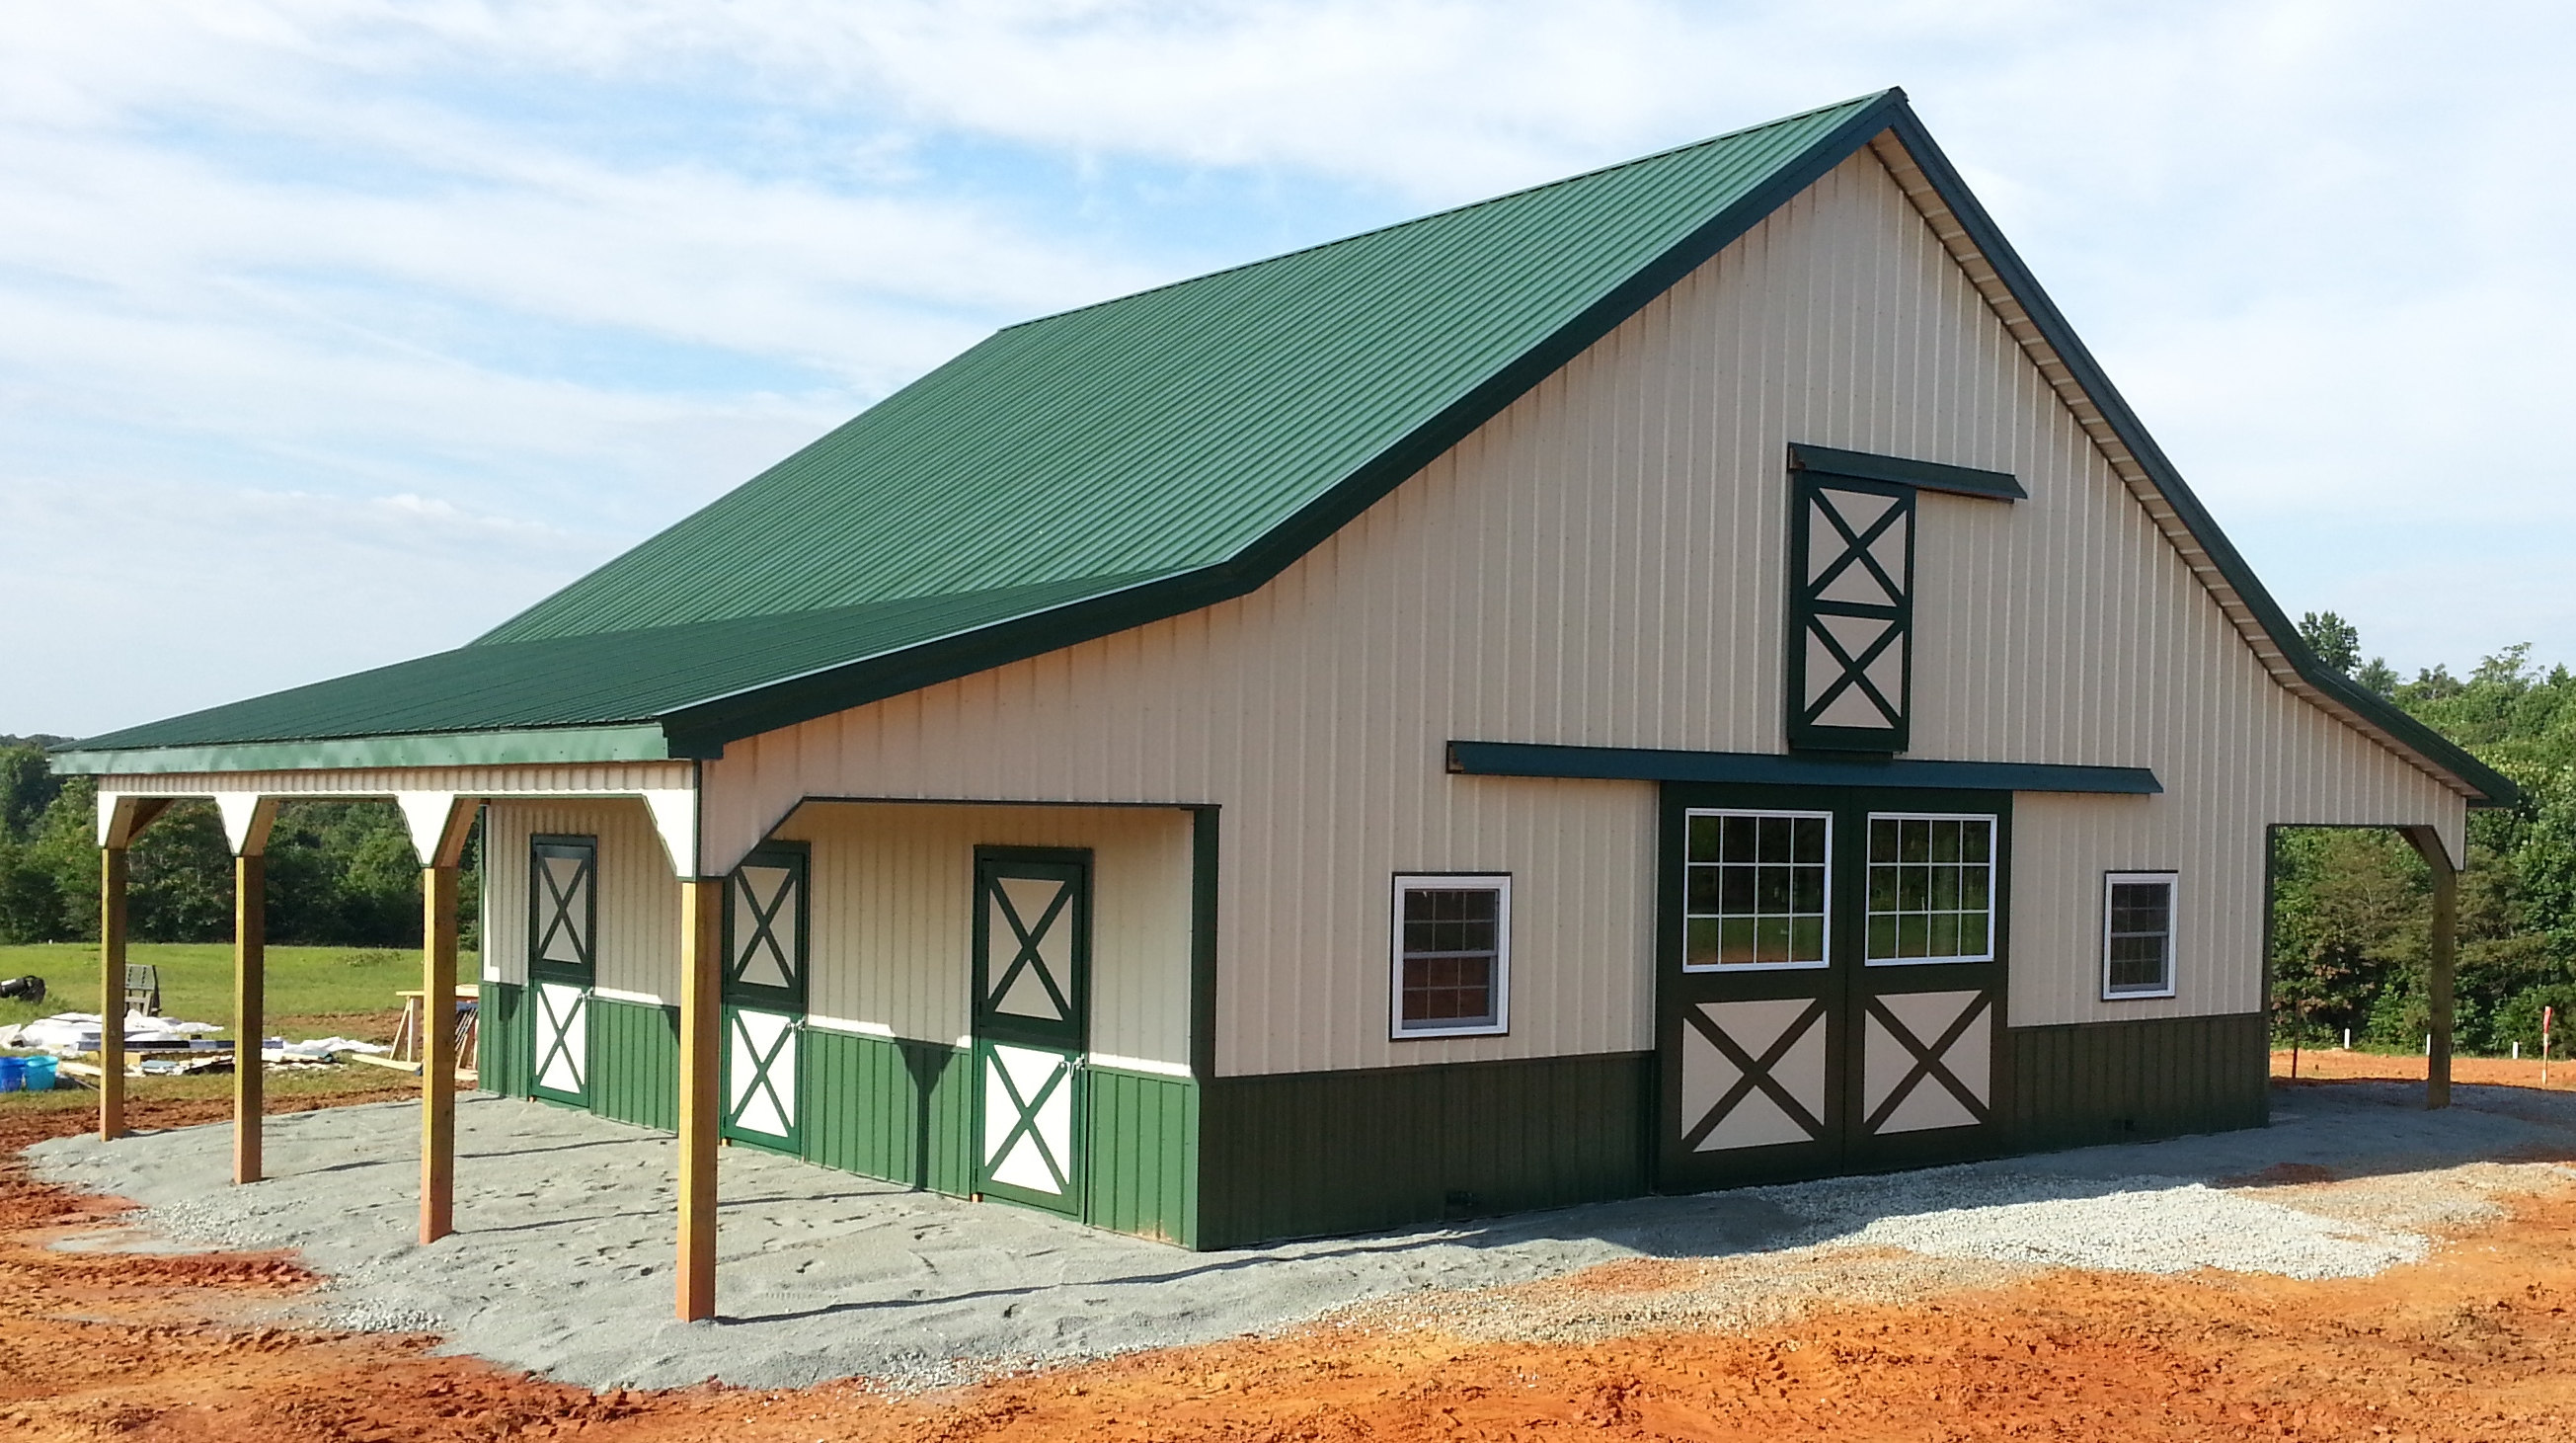 Residential pole barn kits house plans Residential pole barn kits